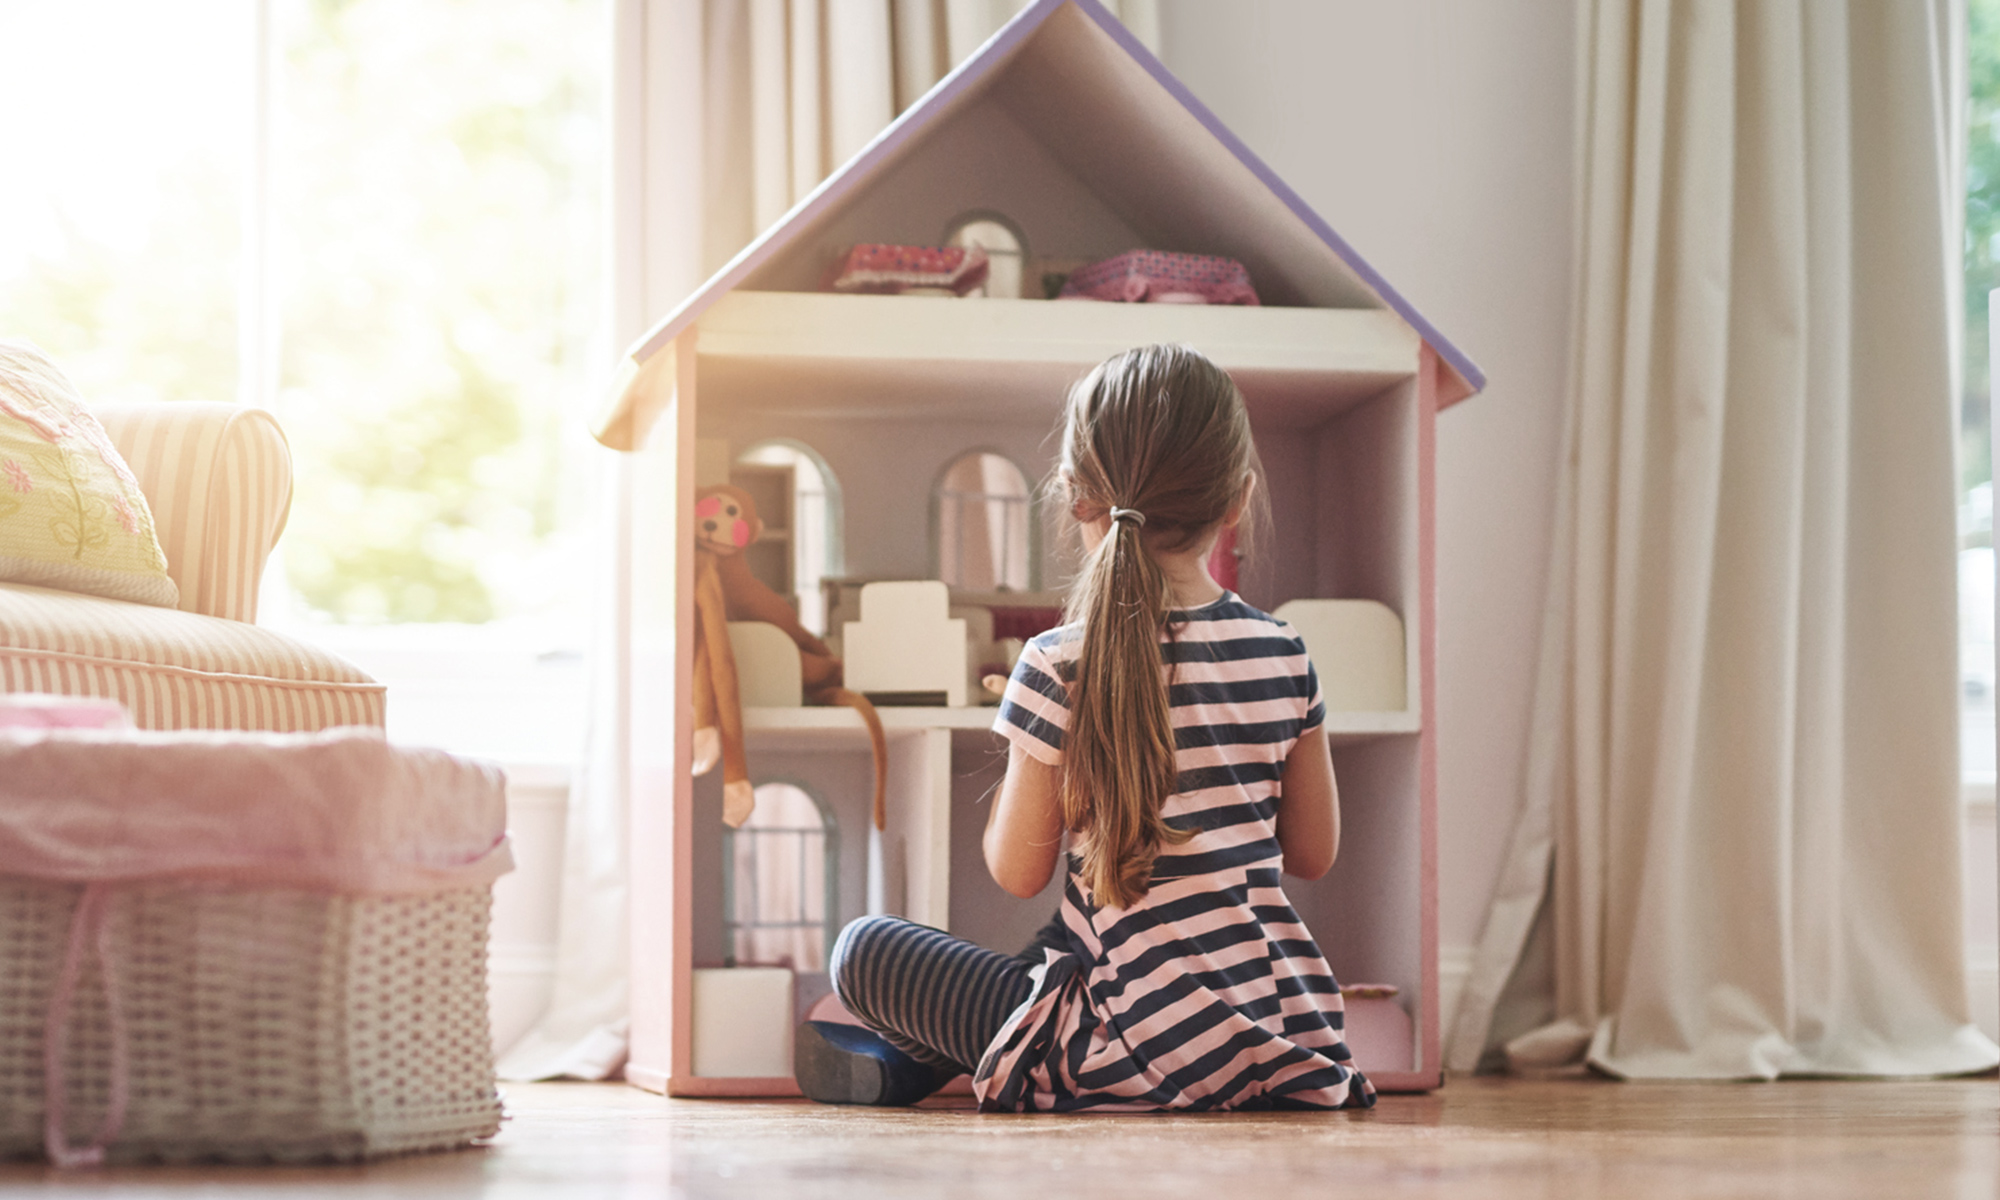 children's bedroom furniture girl with doll house